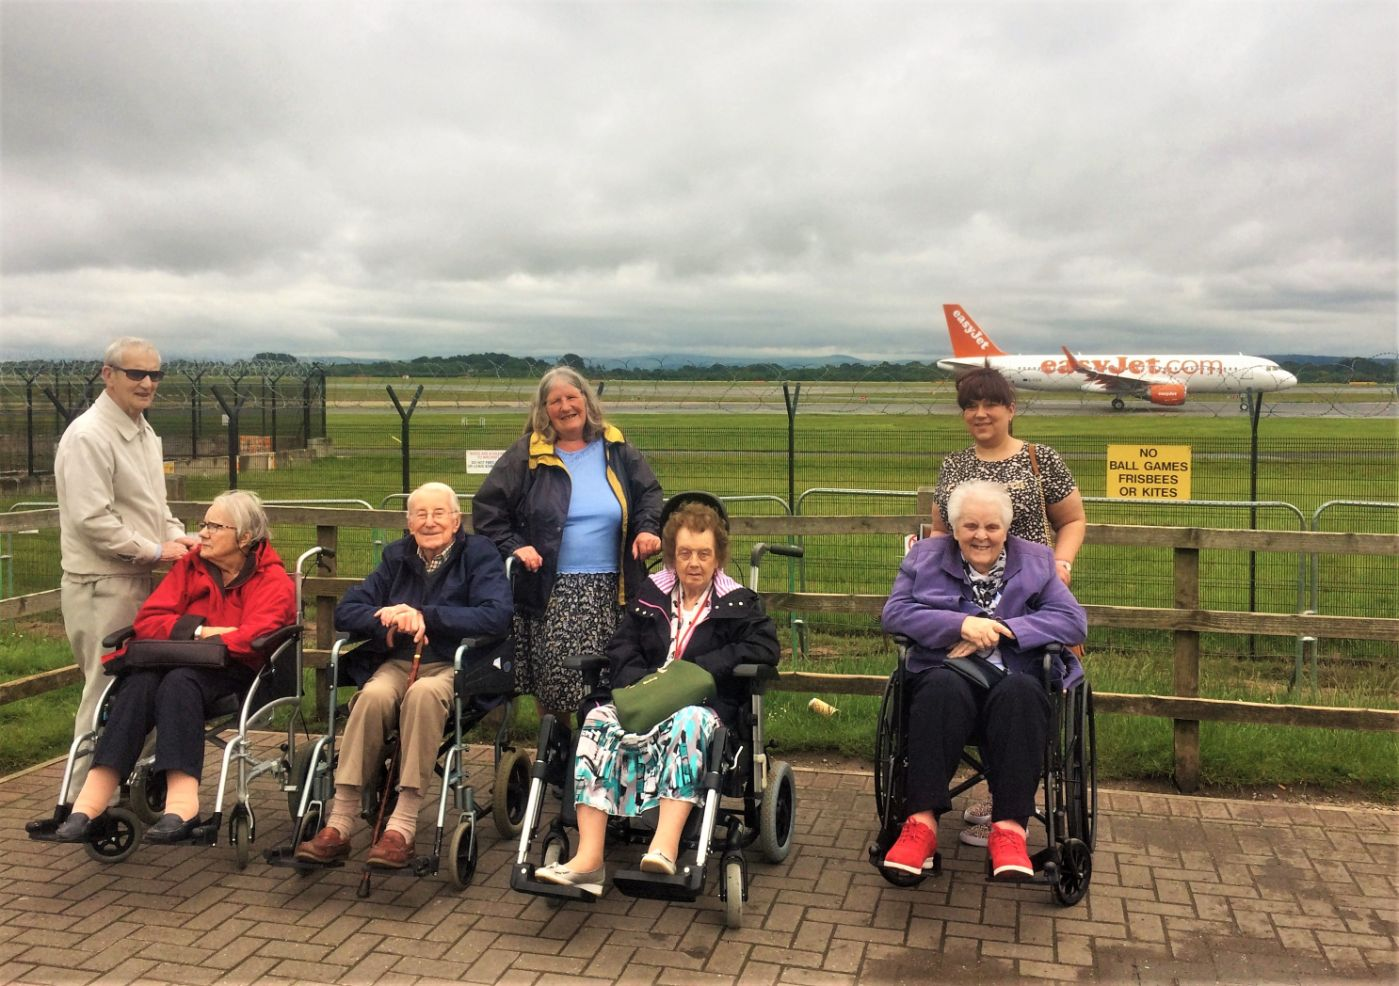 Residents at Lawton Manor Care Home in Stoke-on-Trent enjoy a trip to Manchester Airport